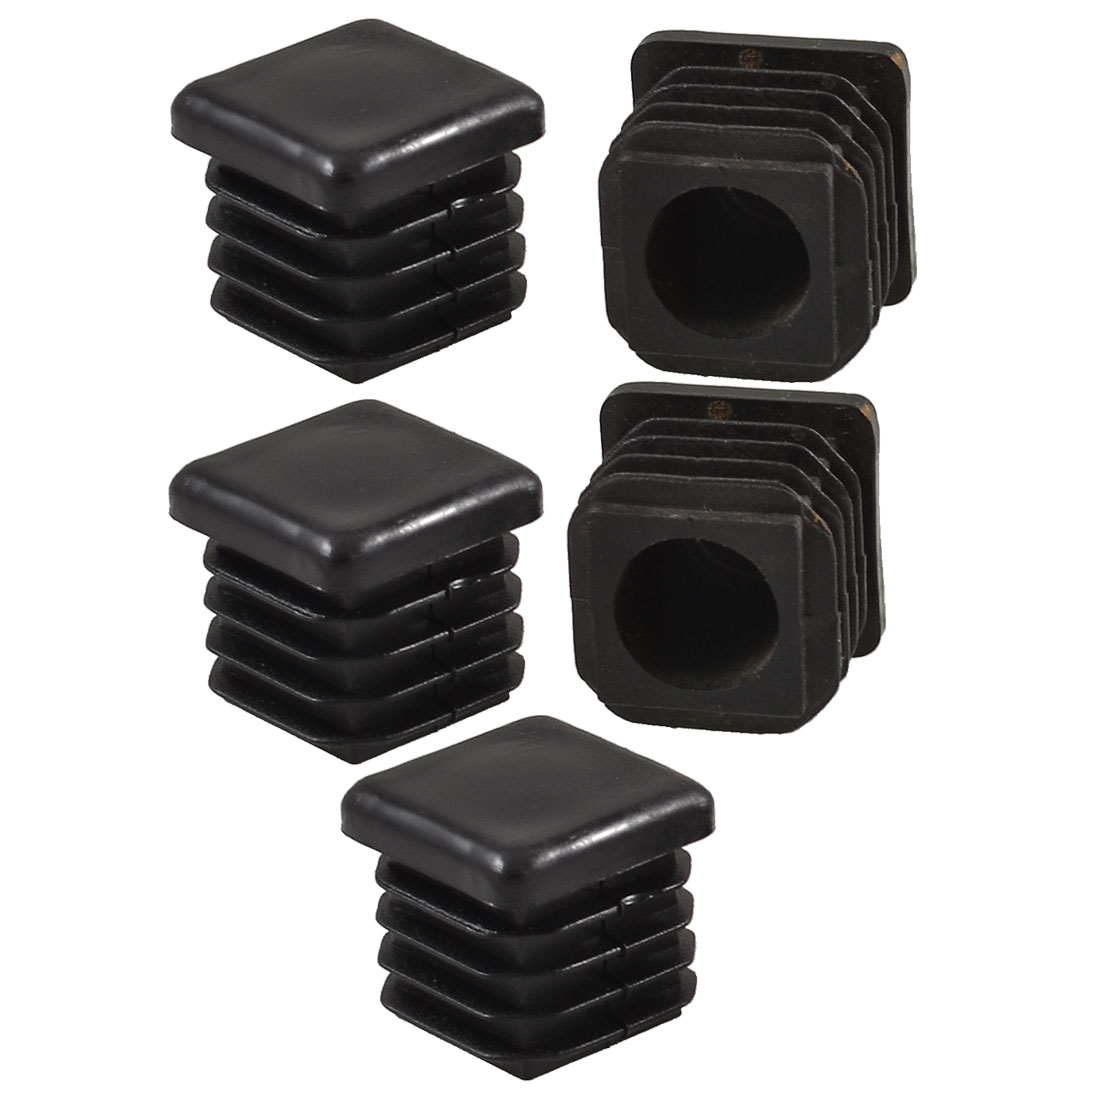 19mm x 19mm Plastic Square Tube Inserts End Blanking Caps Black 5 Pcs